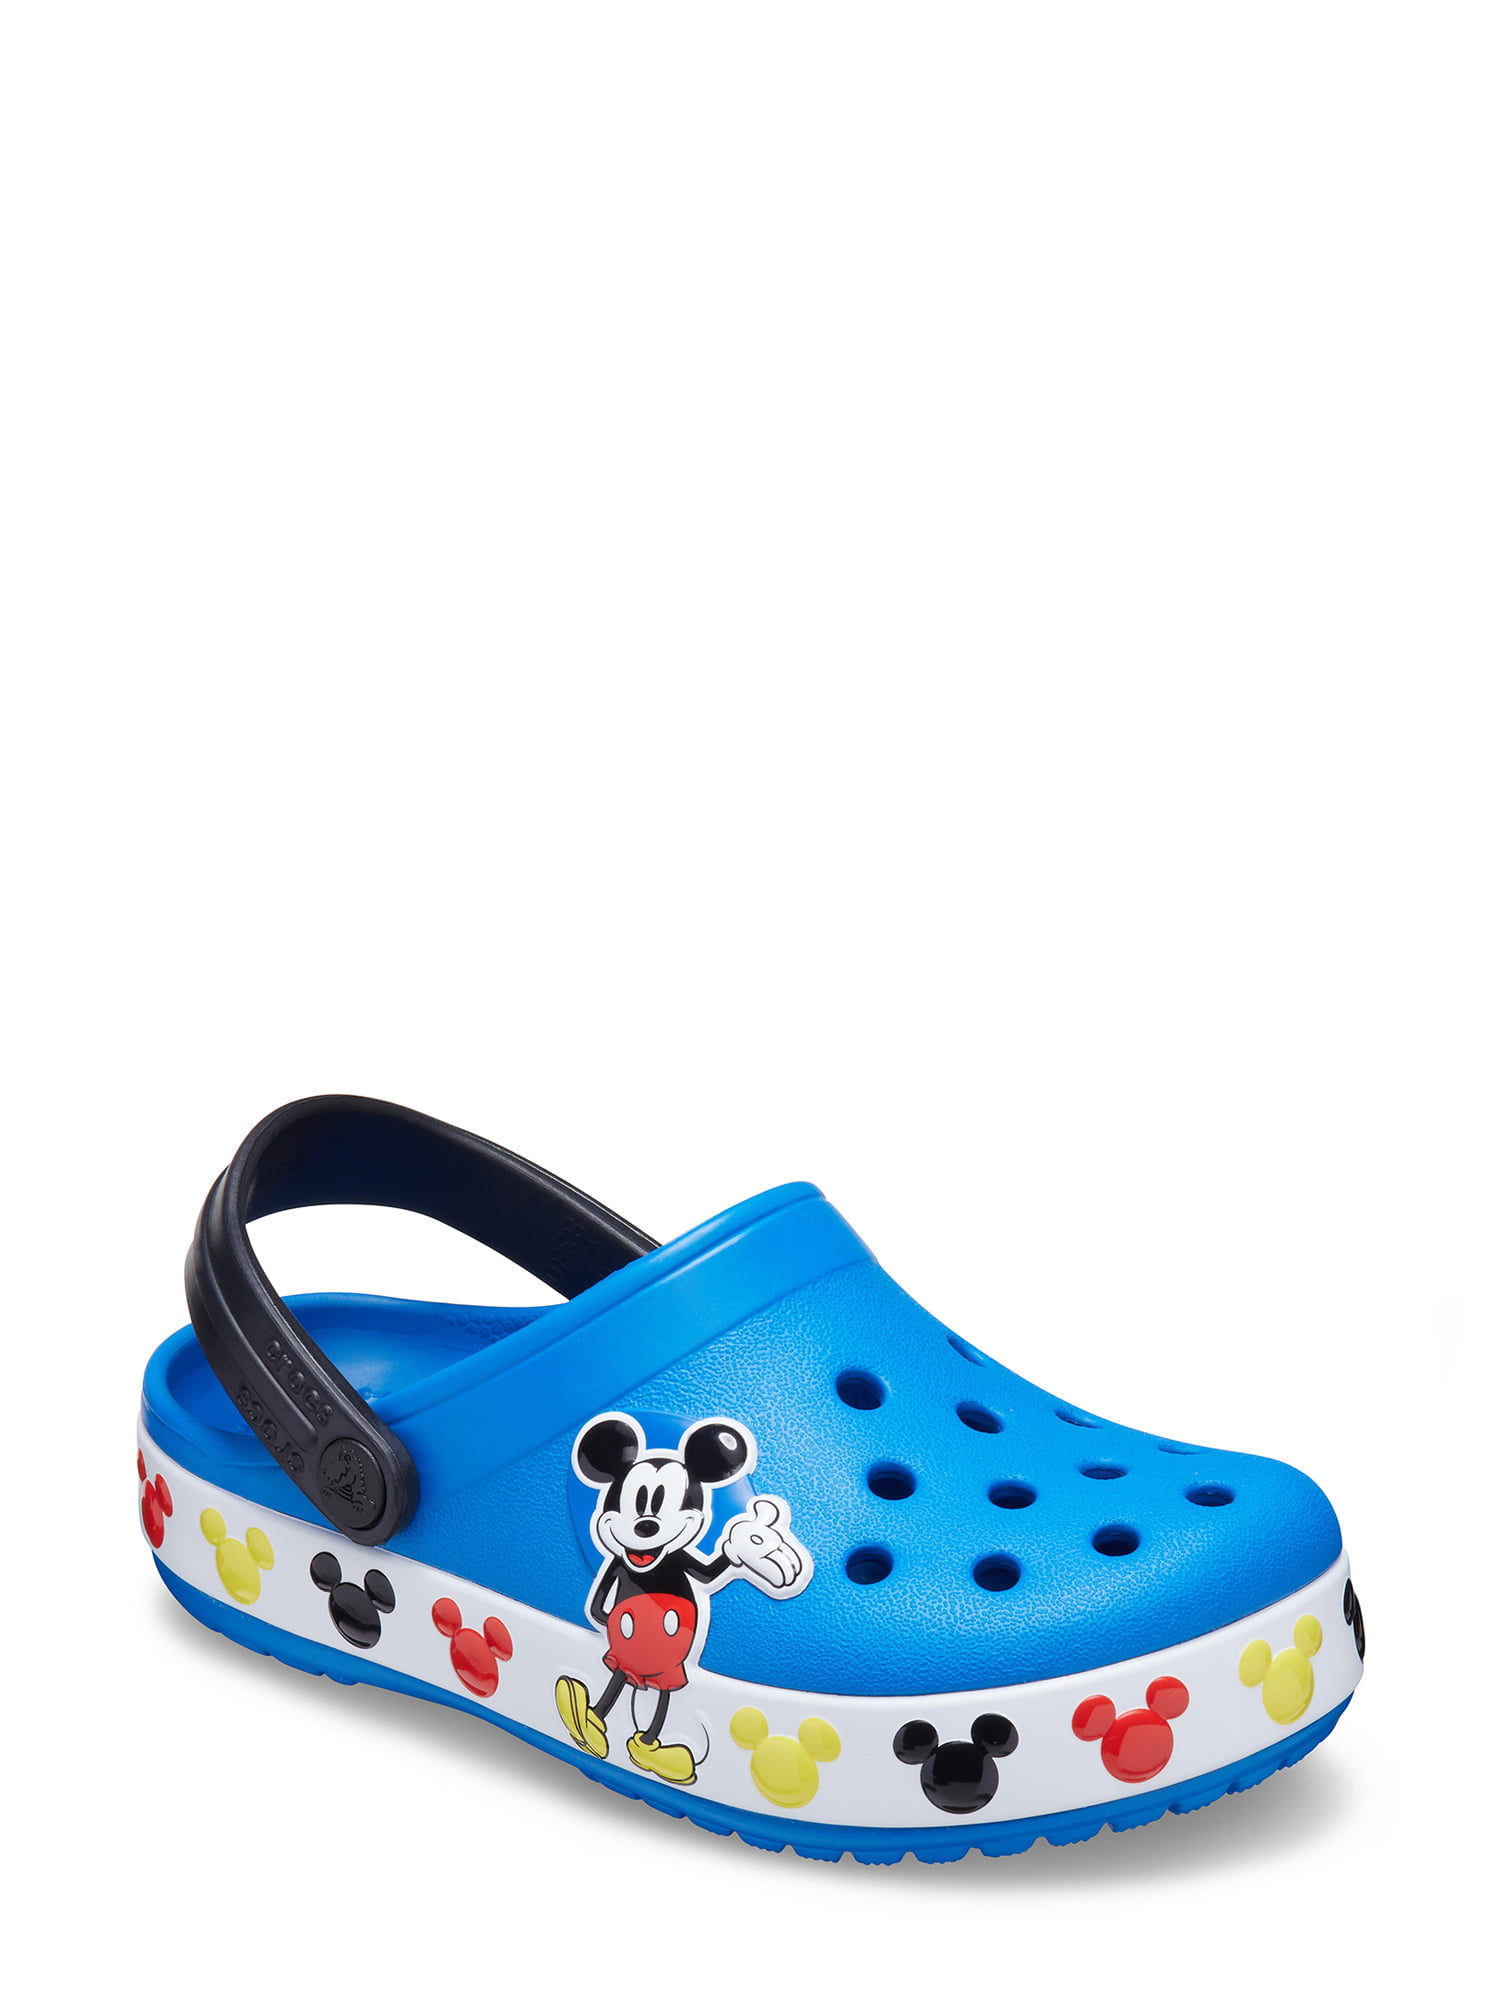 Crocs Child Mickey Mouse Clogs (Ages 1